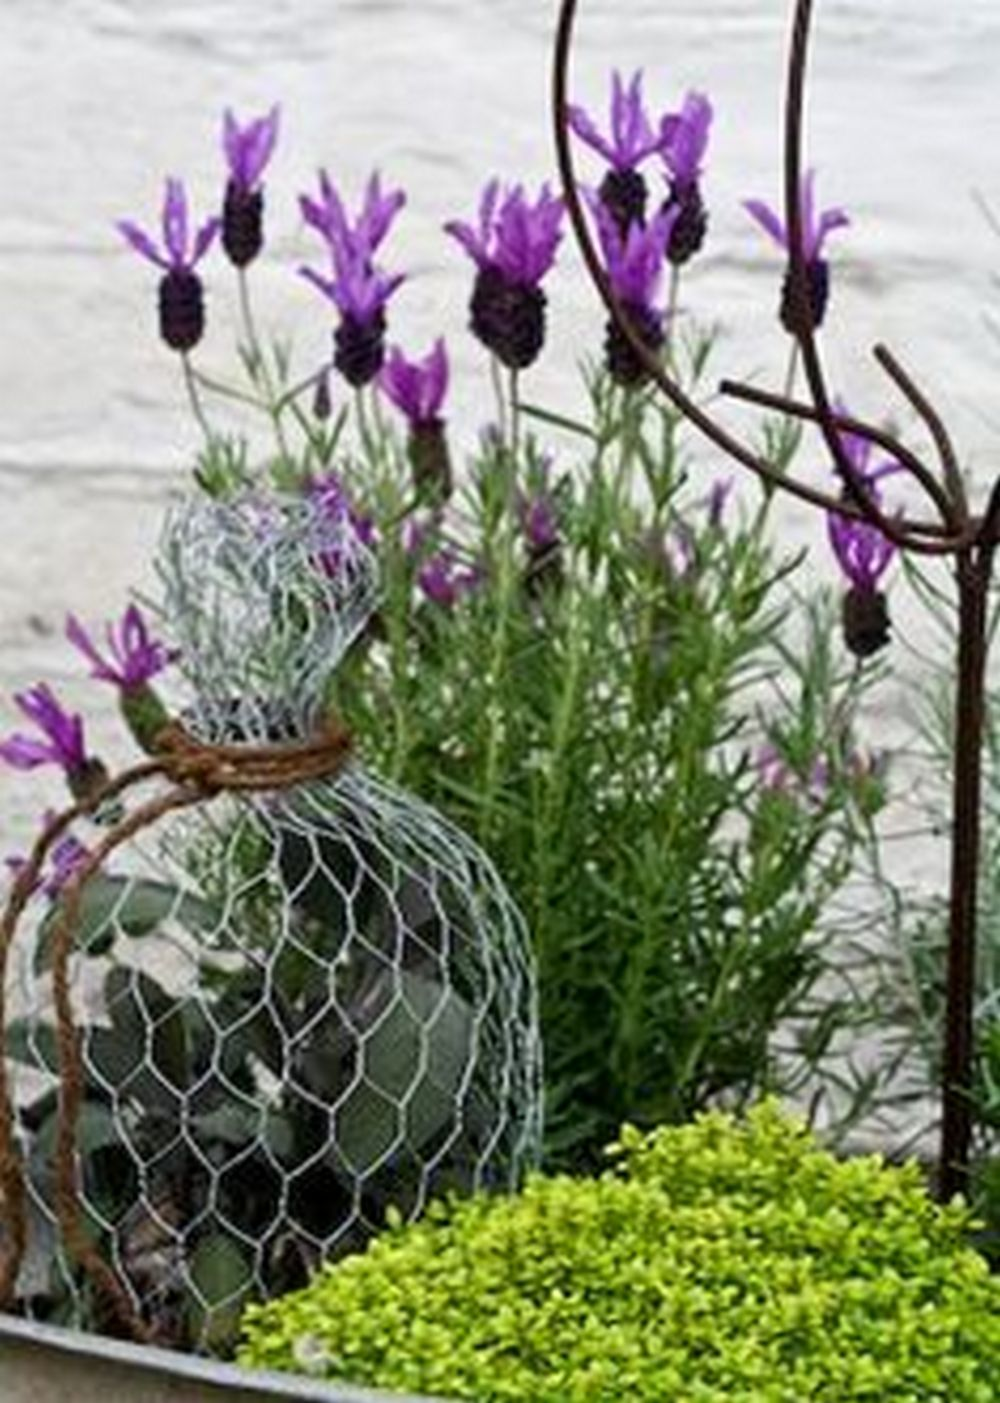 DIY Garden Cloche to Protect Young New Plants